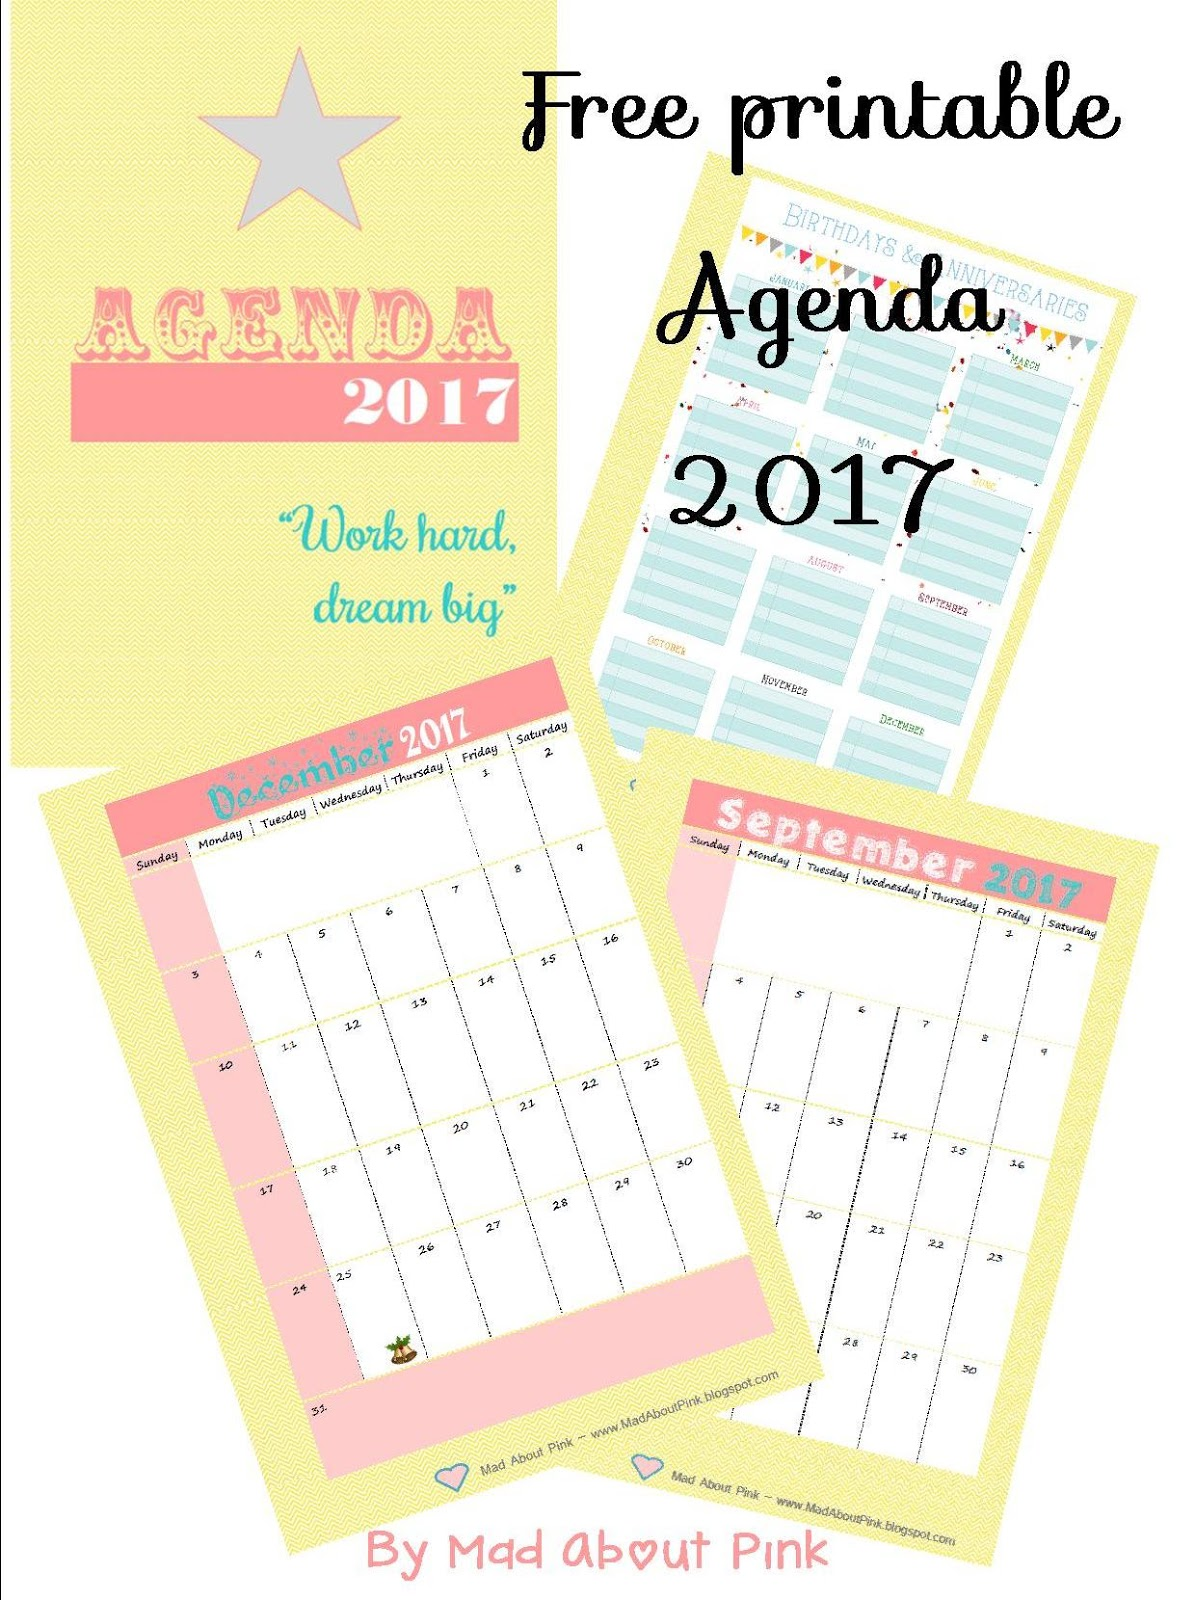 Mad About Pink Free printable 2017 Agenda A4 format – Format of an Agenda